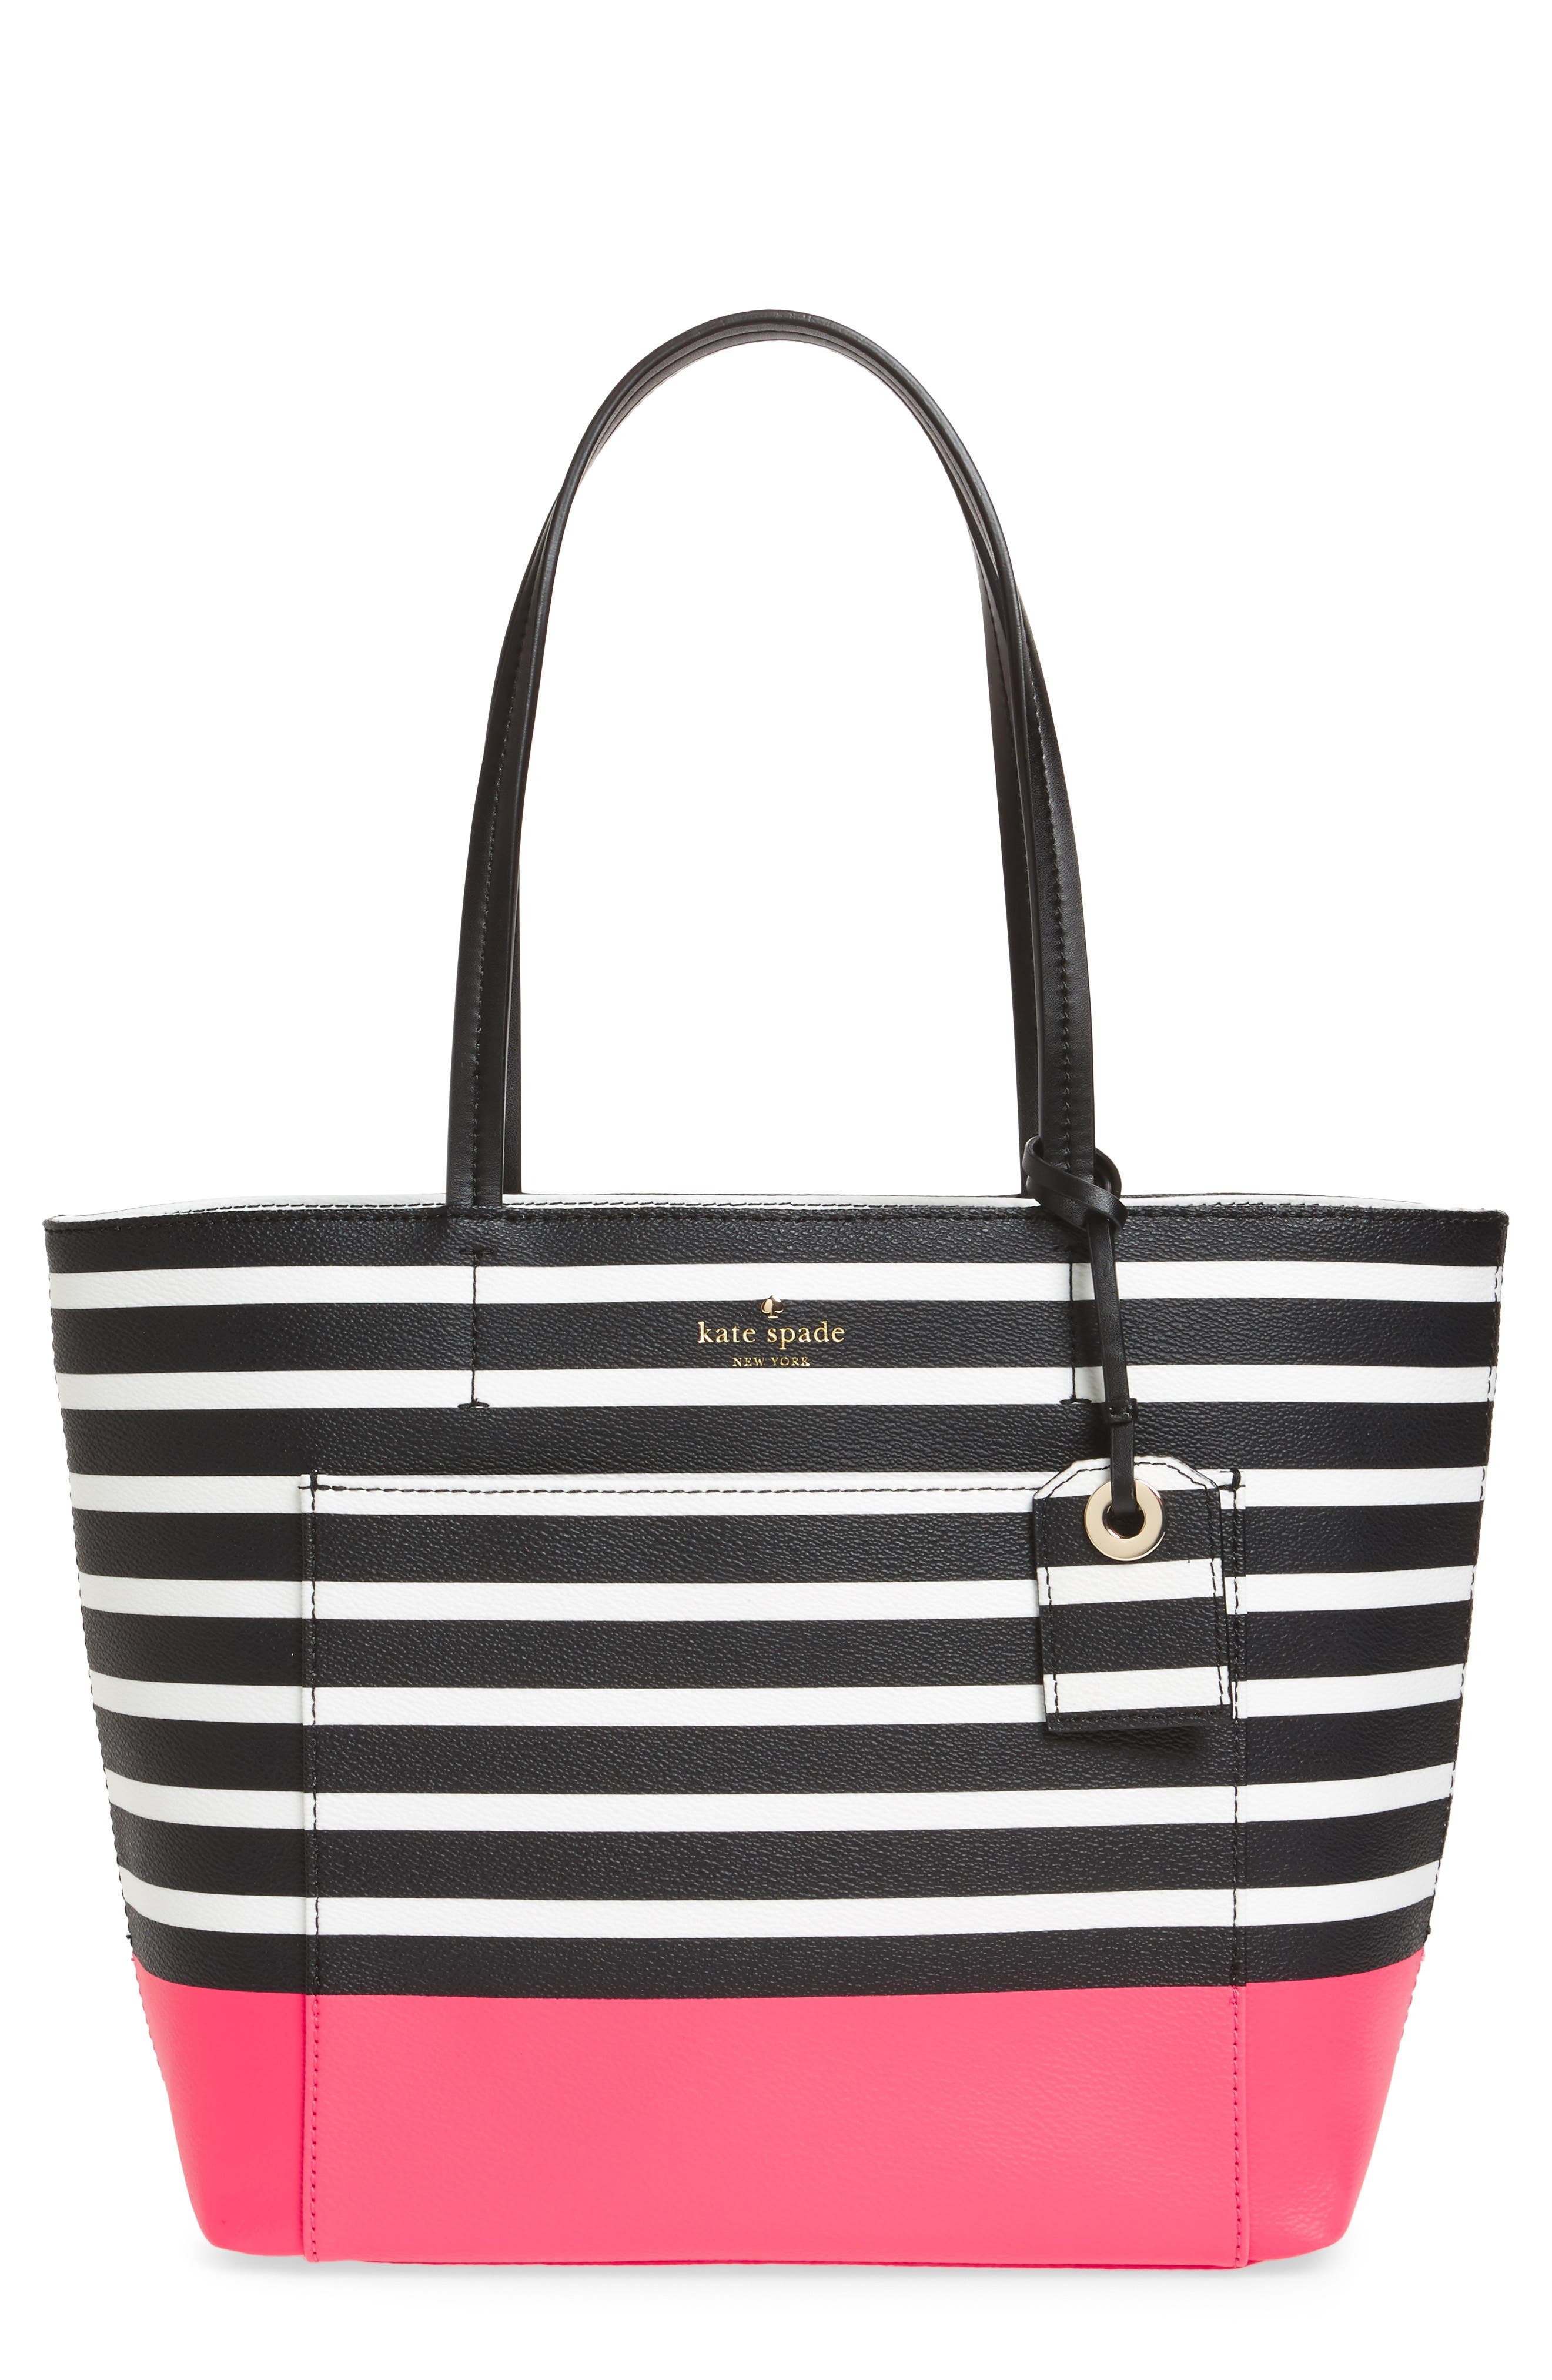 Main Image - kate spade new york hyde lane dipped stripe - small riley tote